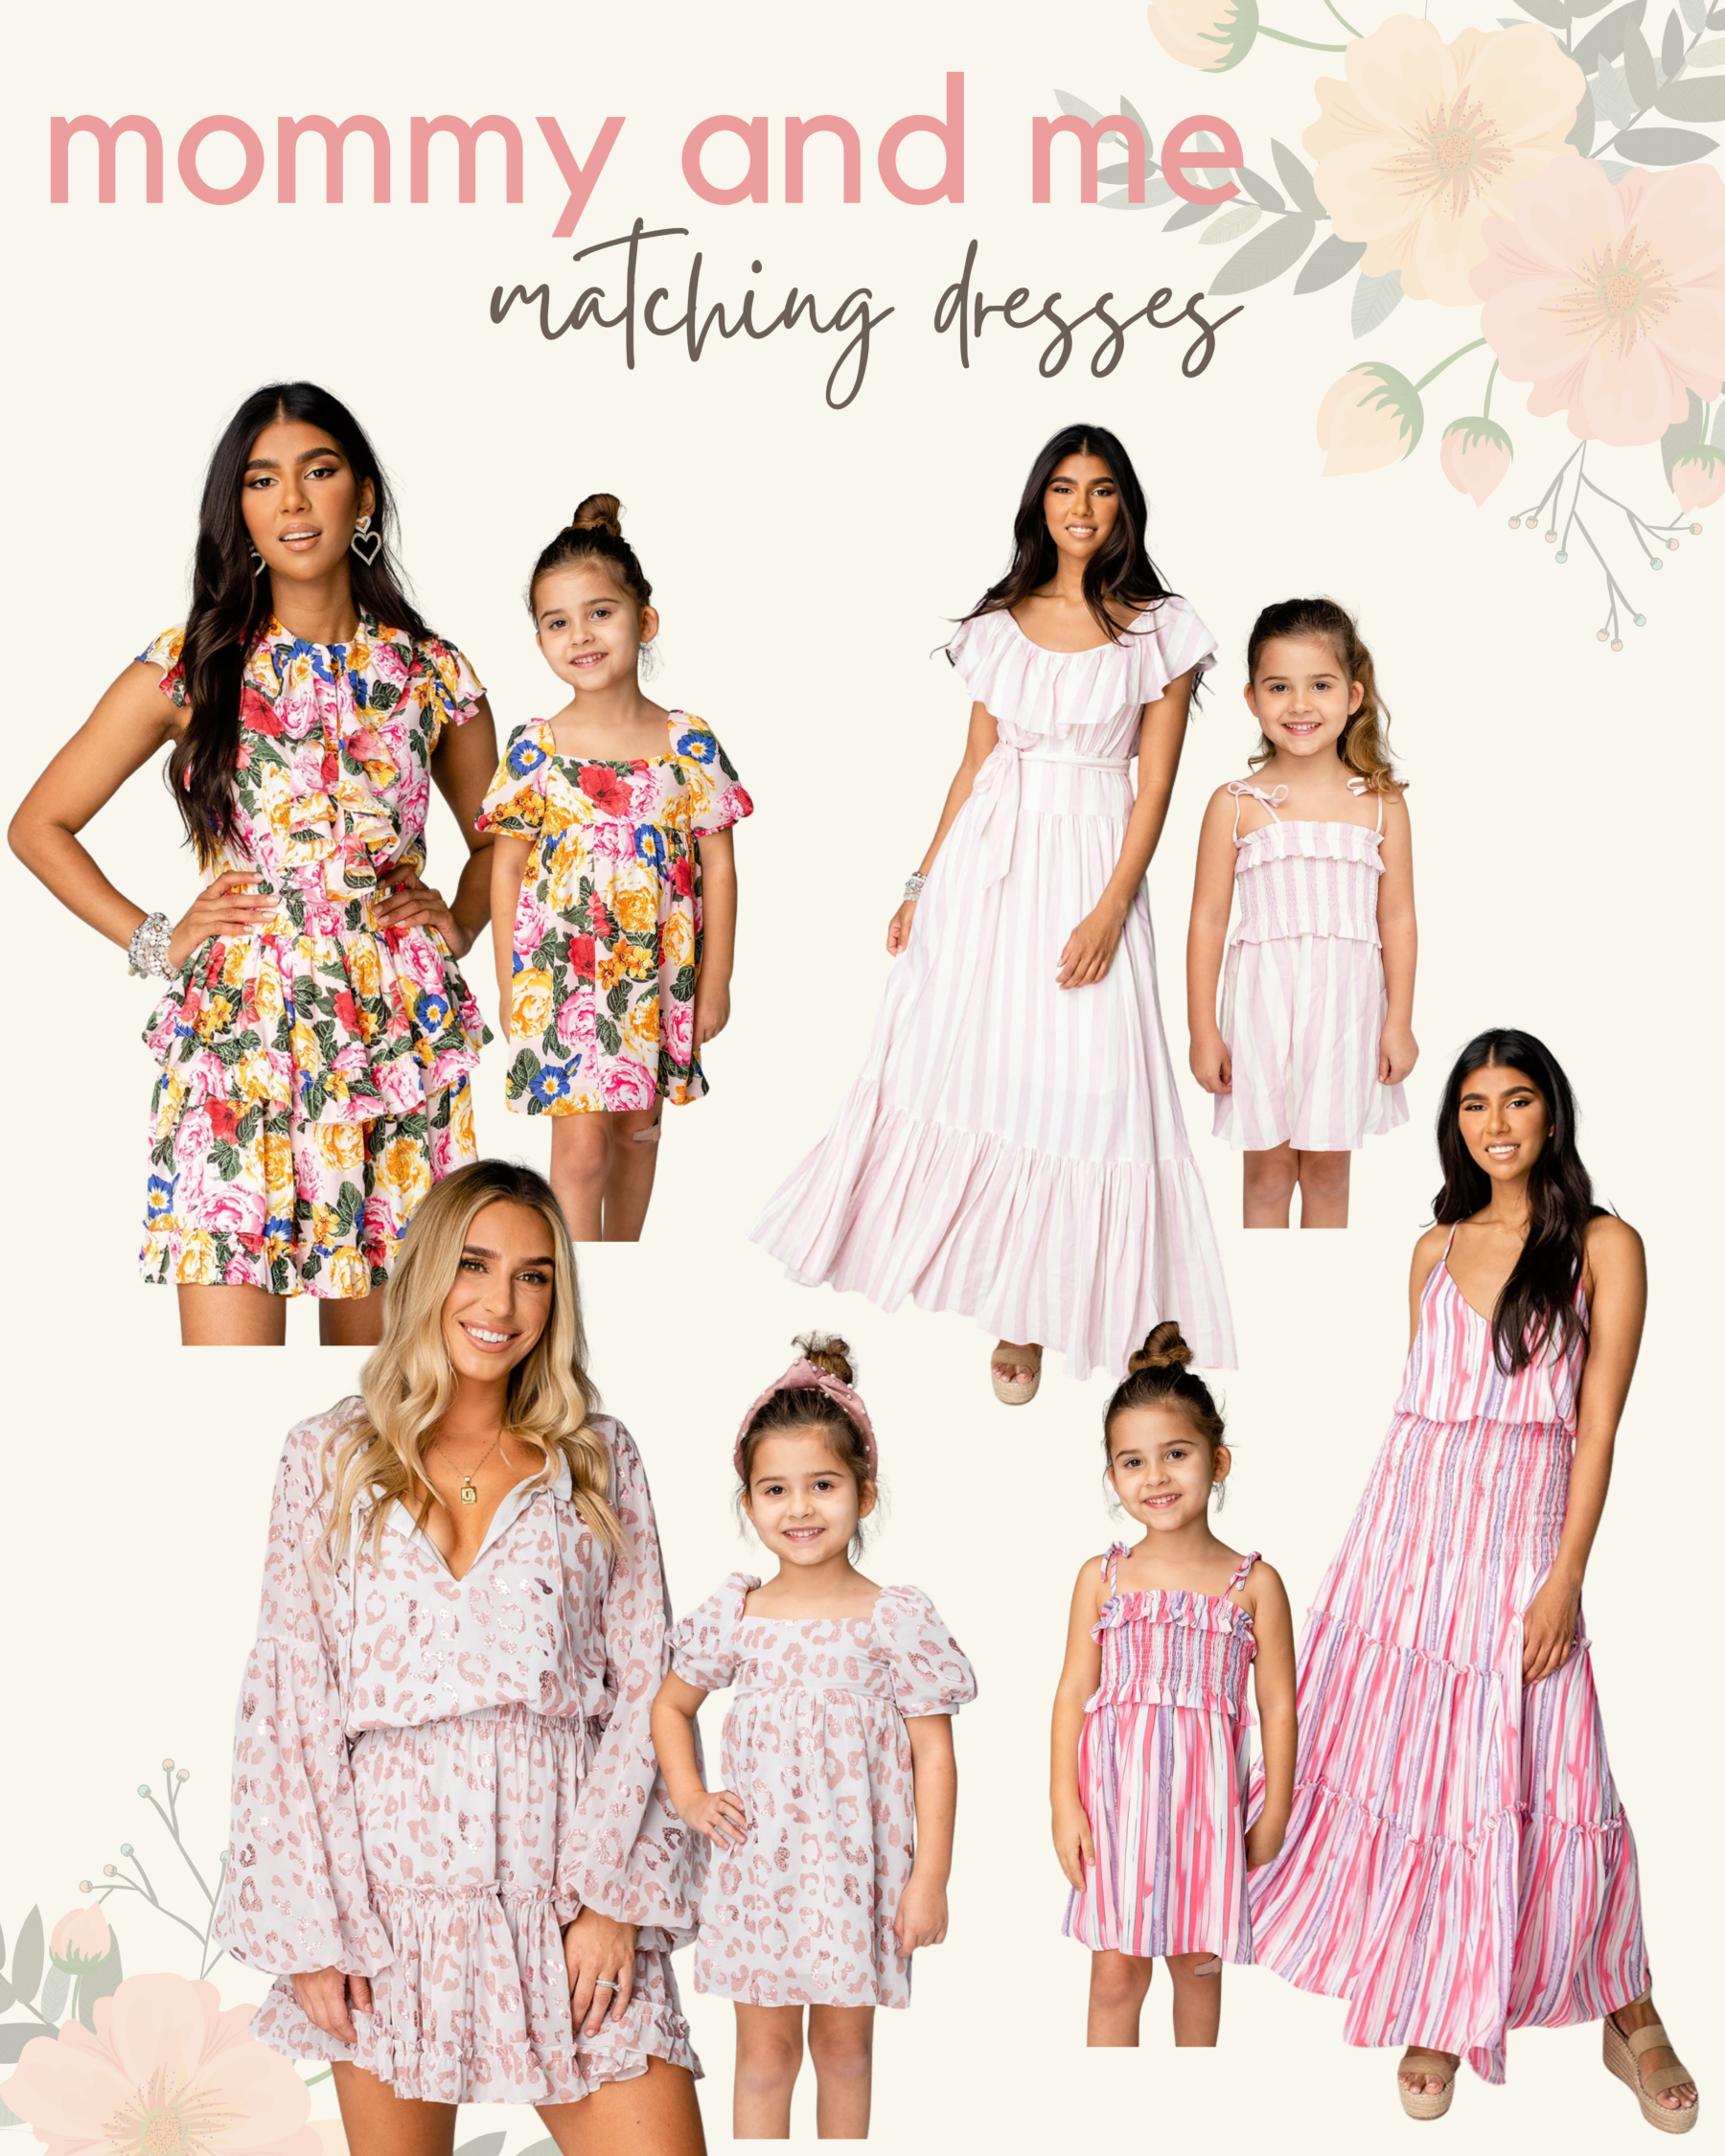 cute & little | dallas mom petite fashion blog | chicwish matching mom daughter dresses mothers day easter beach vacation photoshoot outfit |Mommy and Me Dresses by popular Dallas petite fashion blog, Cute and Little: collage image of mommy and me dresses.